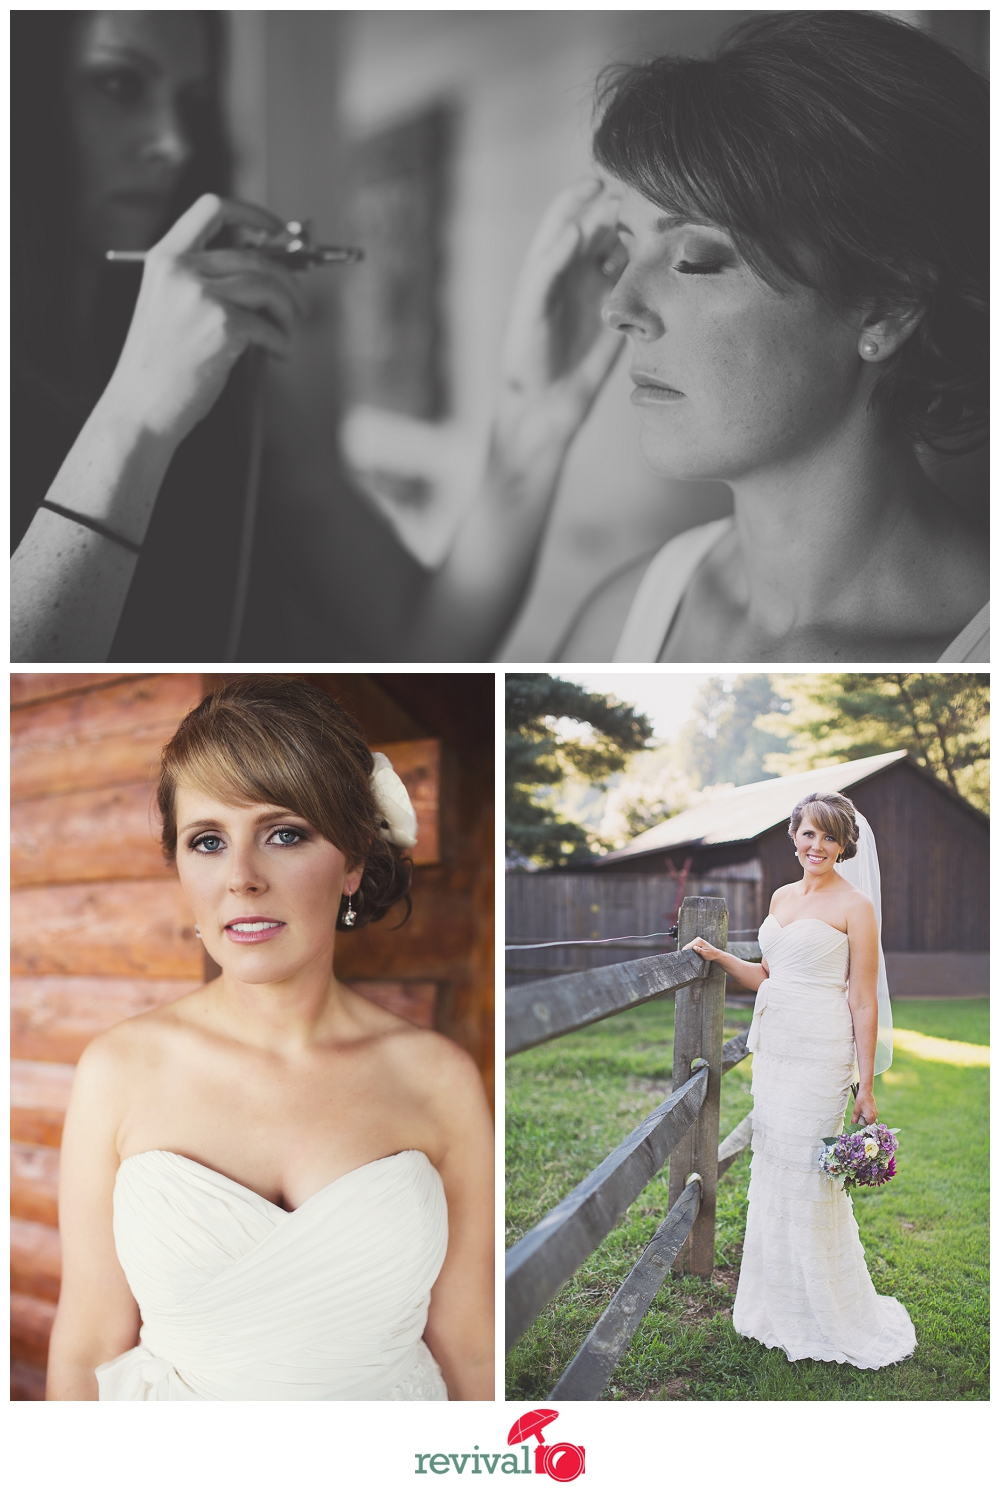 6 Bridal Beauty Tips from Professional Make-Up Artist in North Carolina Sharla Bance Photos by Revival Photography